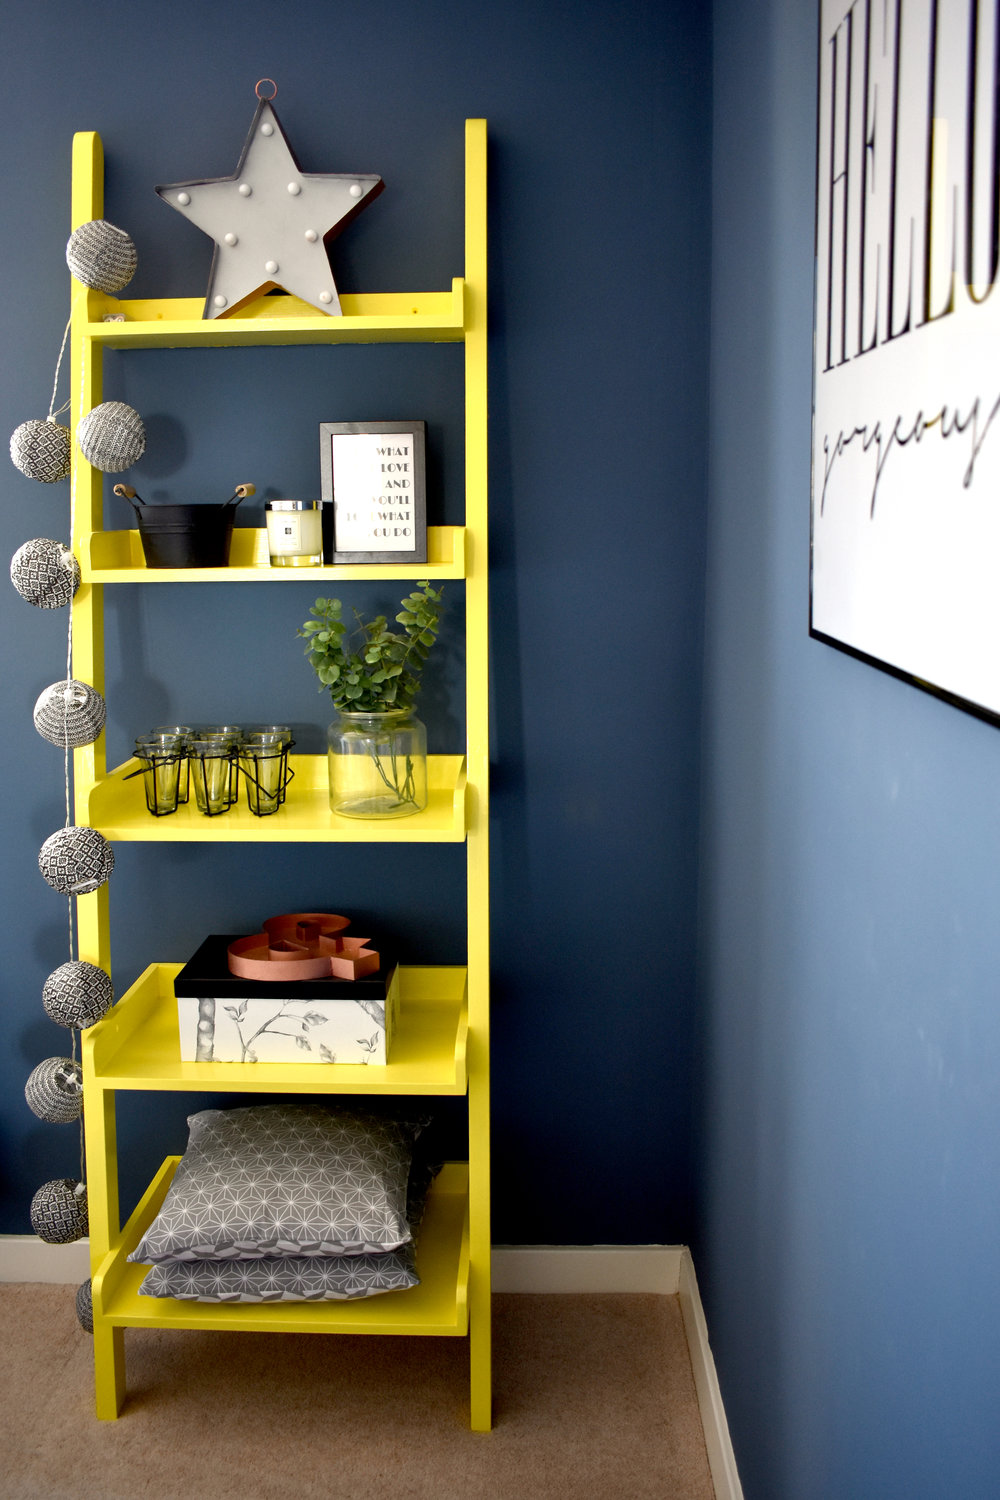 AFTER: The bookshelf was painted in Rust Oleum Bright Yellow